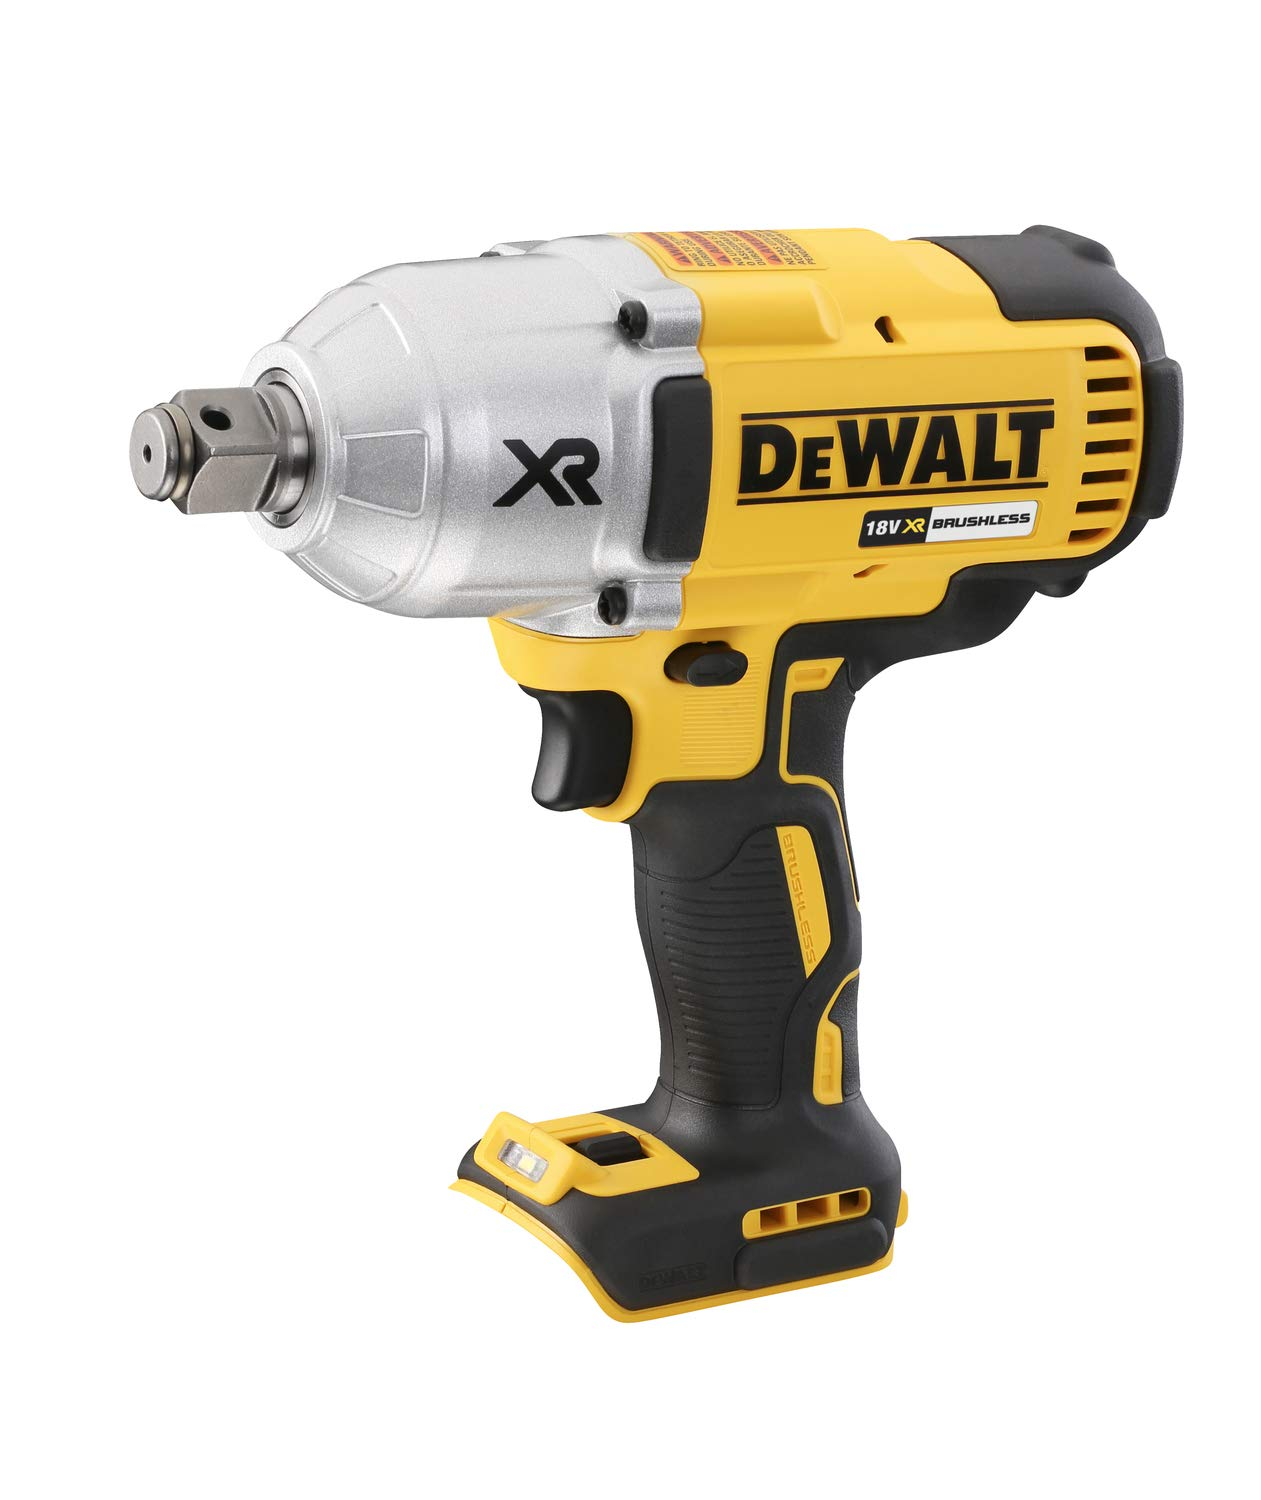 18V, 950Nm, High Torque Impact Wrench, BL, 3/4ʺ (Bare)